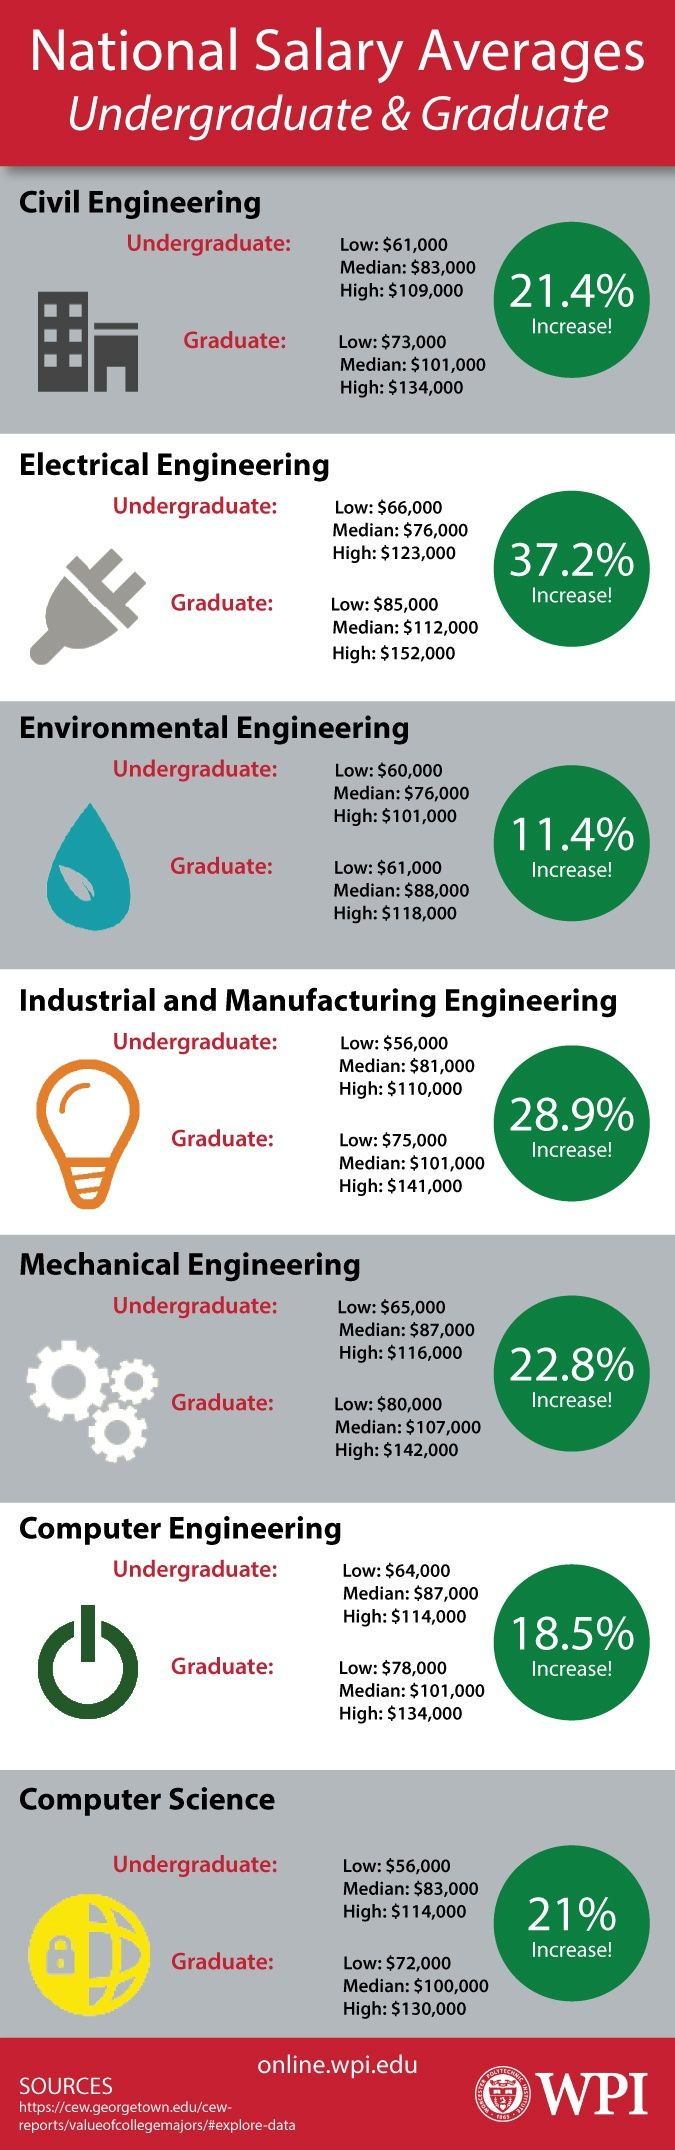 Have you ever wondered what a graduate degree could do for your salary? View our info graphic to discover the difference a graduate degree can make in the following fields: Civil Engineering, Electrical Engineering, Environmental Engineering, Industrial and Manufacturing Engineering, Mechanical Engineering, Computer Engineering, and Computer Science